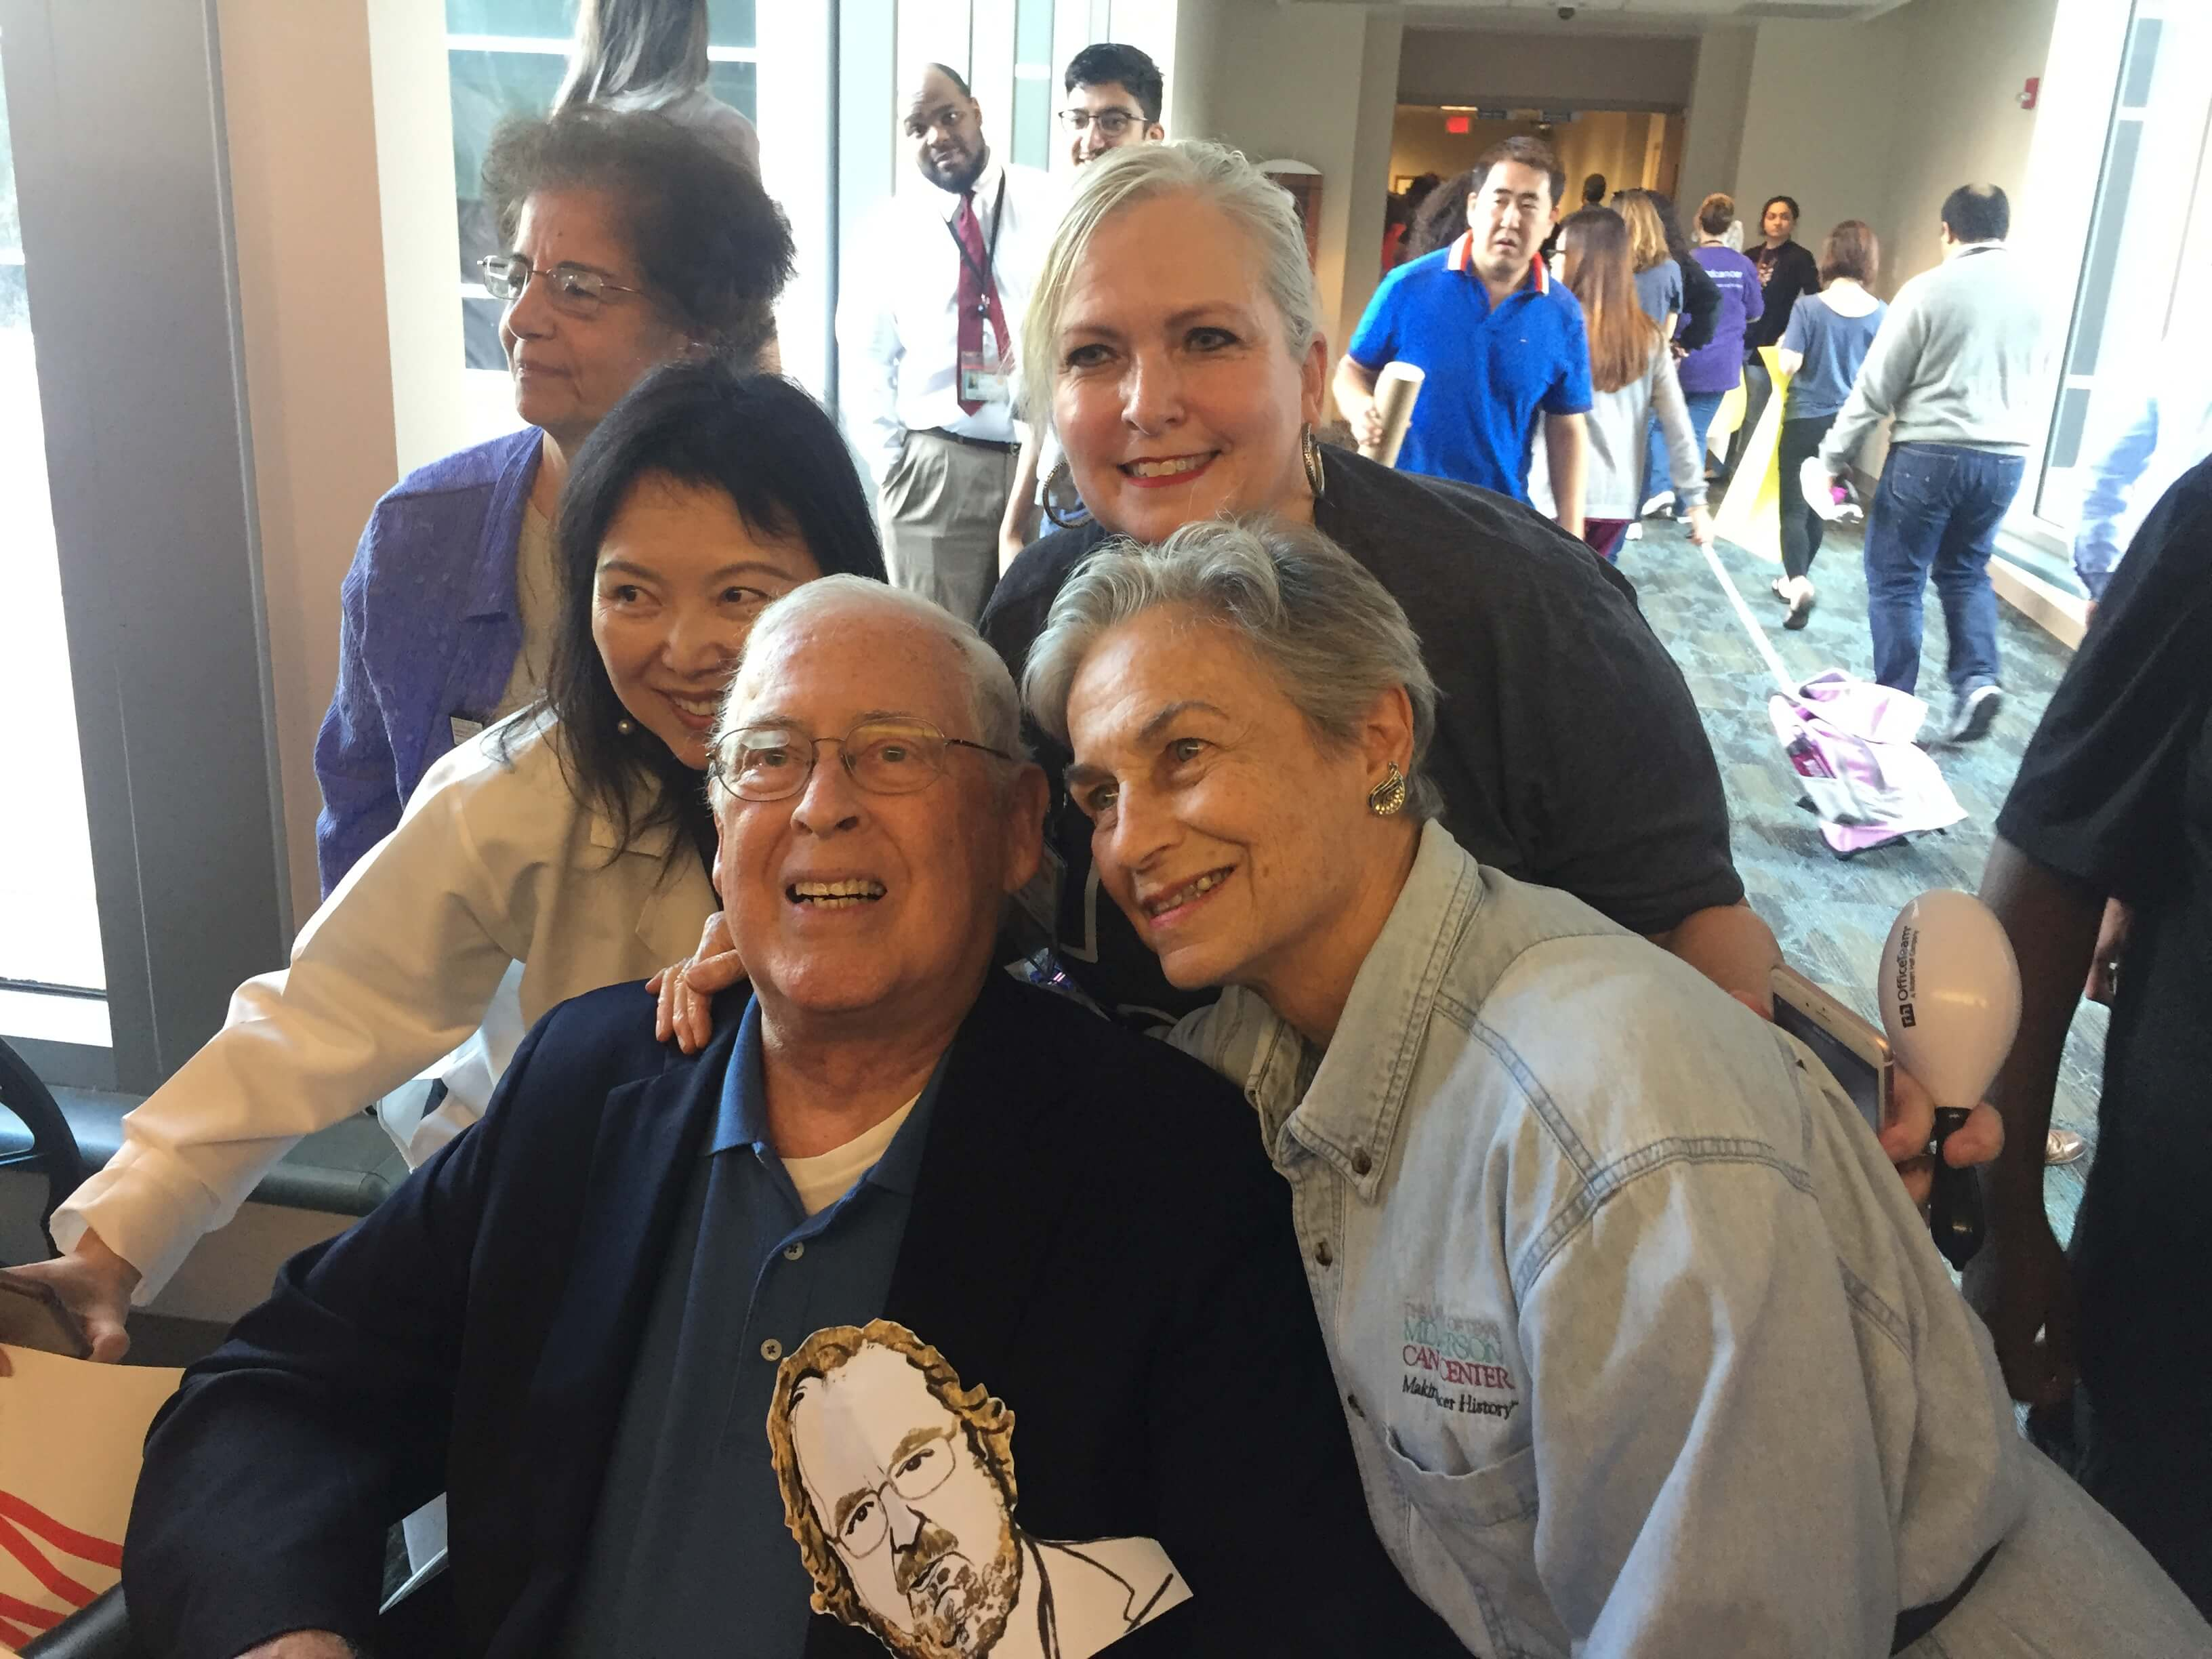 MD Anderson President Emeritus John Mendelsohn, his wife, Anne, right, and executive assistant Melissa Menchaca, center, celebrate on Oct. 5, 2018 during the parade through the cancer center to honor Nobel Prize laureate James Allison, Ph.D. (Photo by Cindy George)